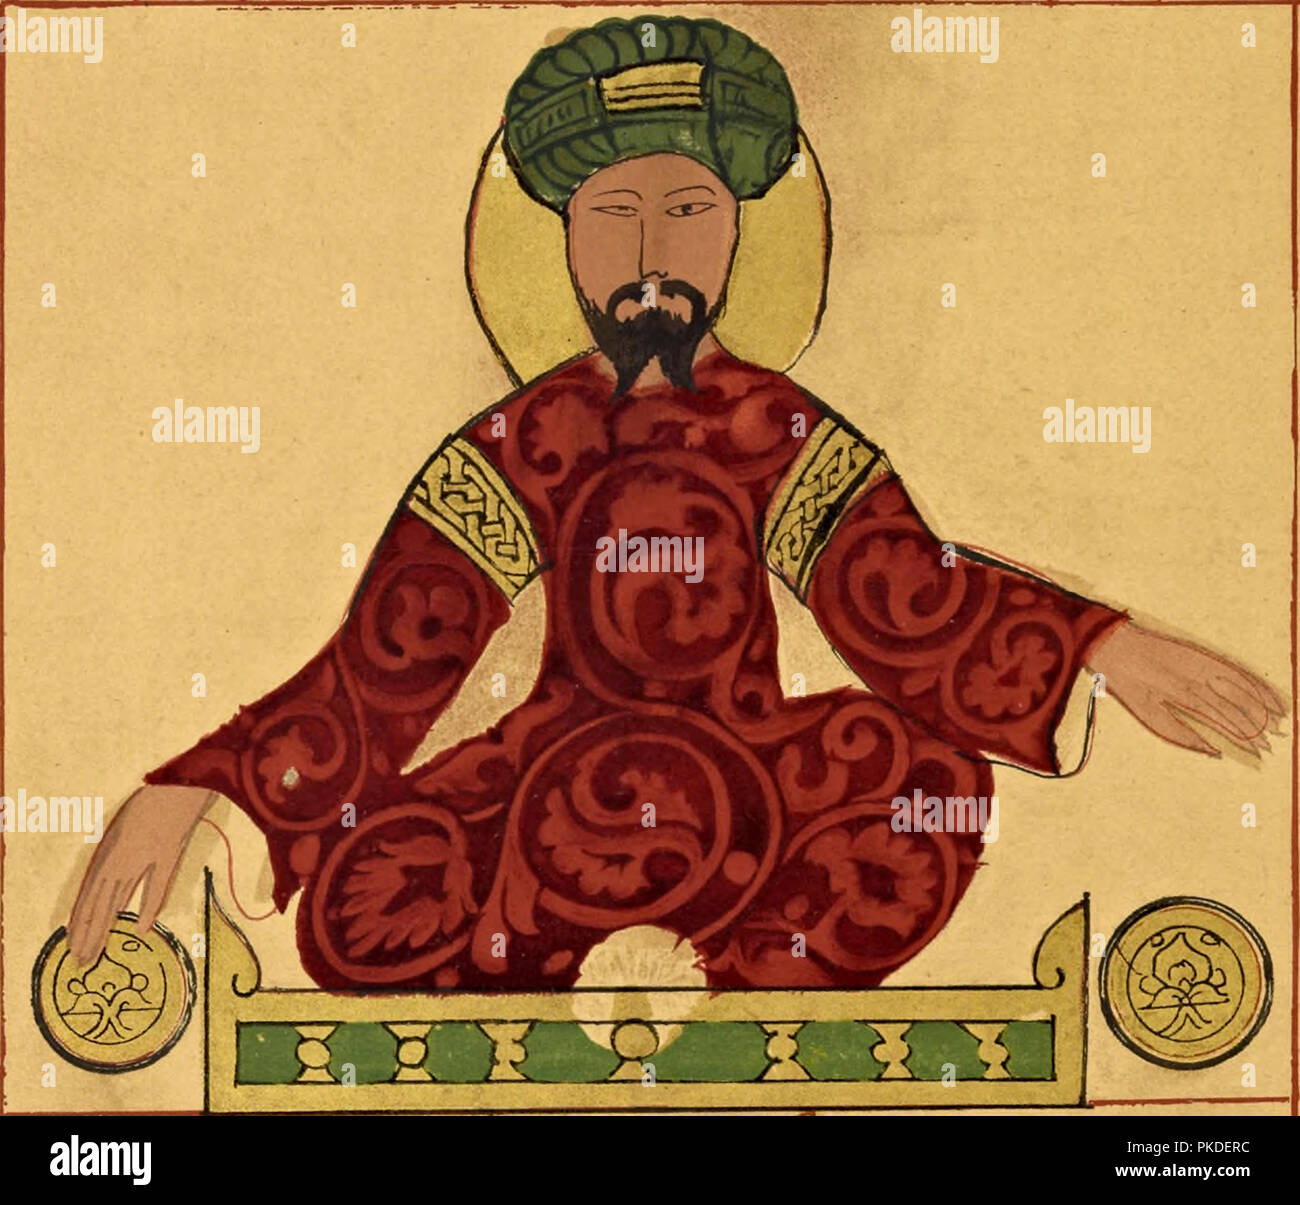 Saladin, Salah ad-Din or Saladin (1137 – 1193), first sultan of Egypt and Syria and the founder of the Ayyubid dynasty - Stock Image